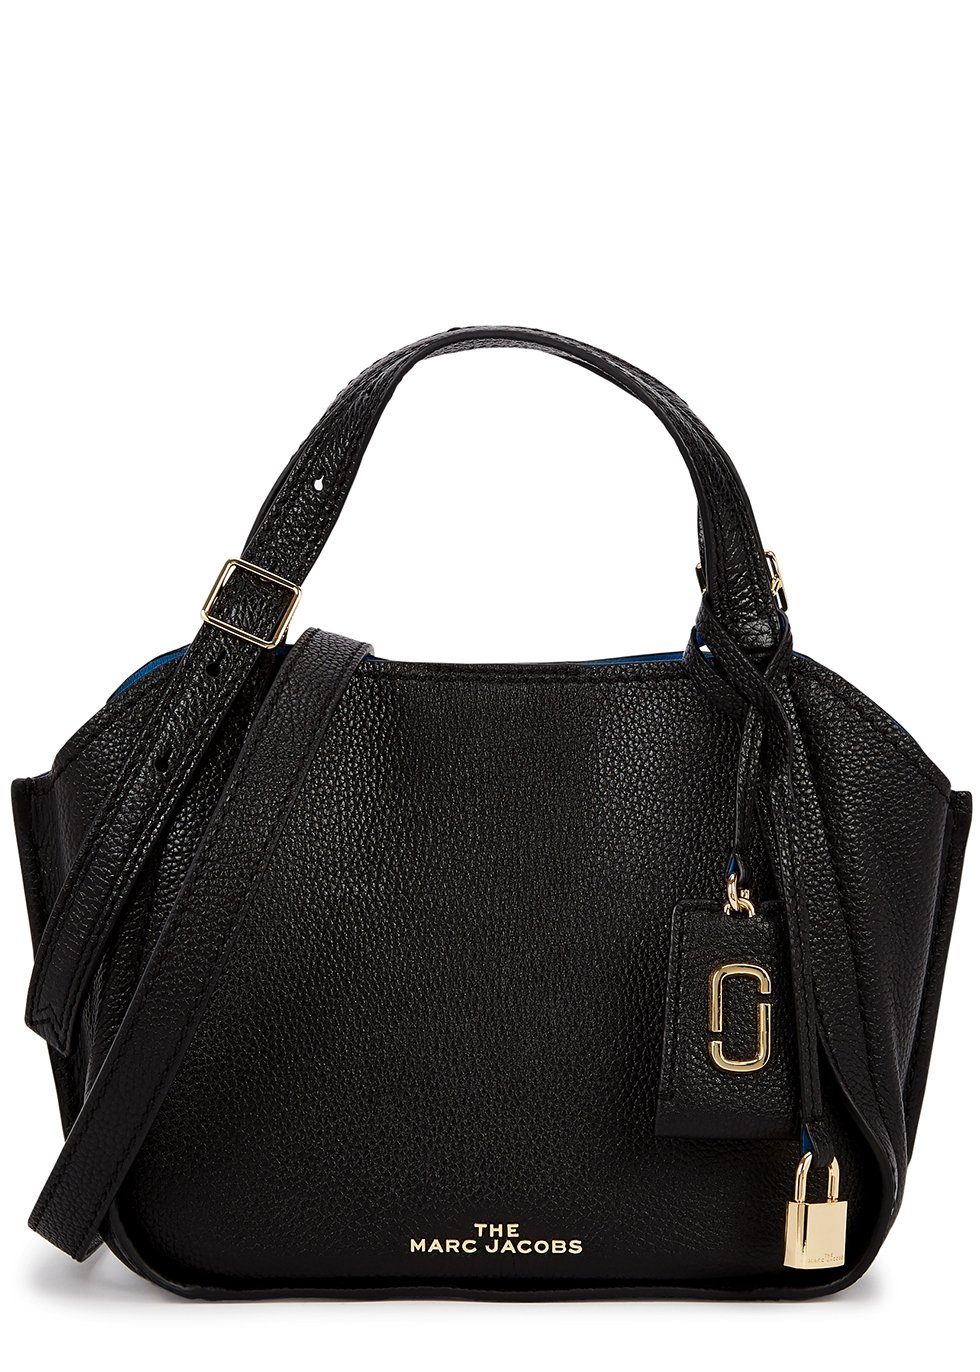 The Director mini black leather top handle bag